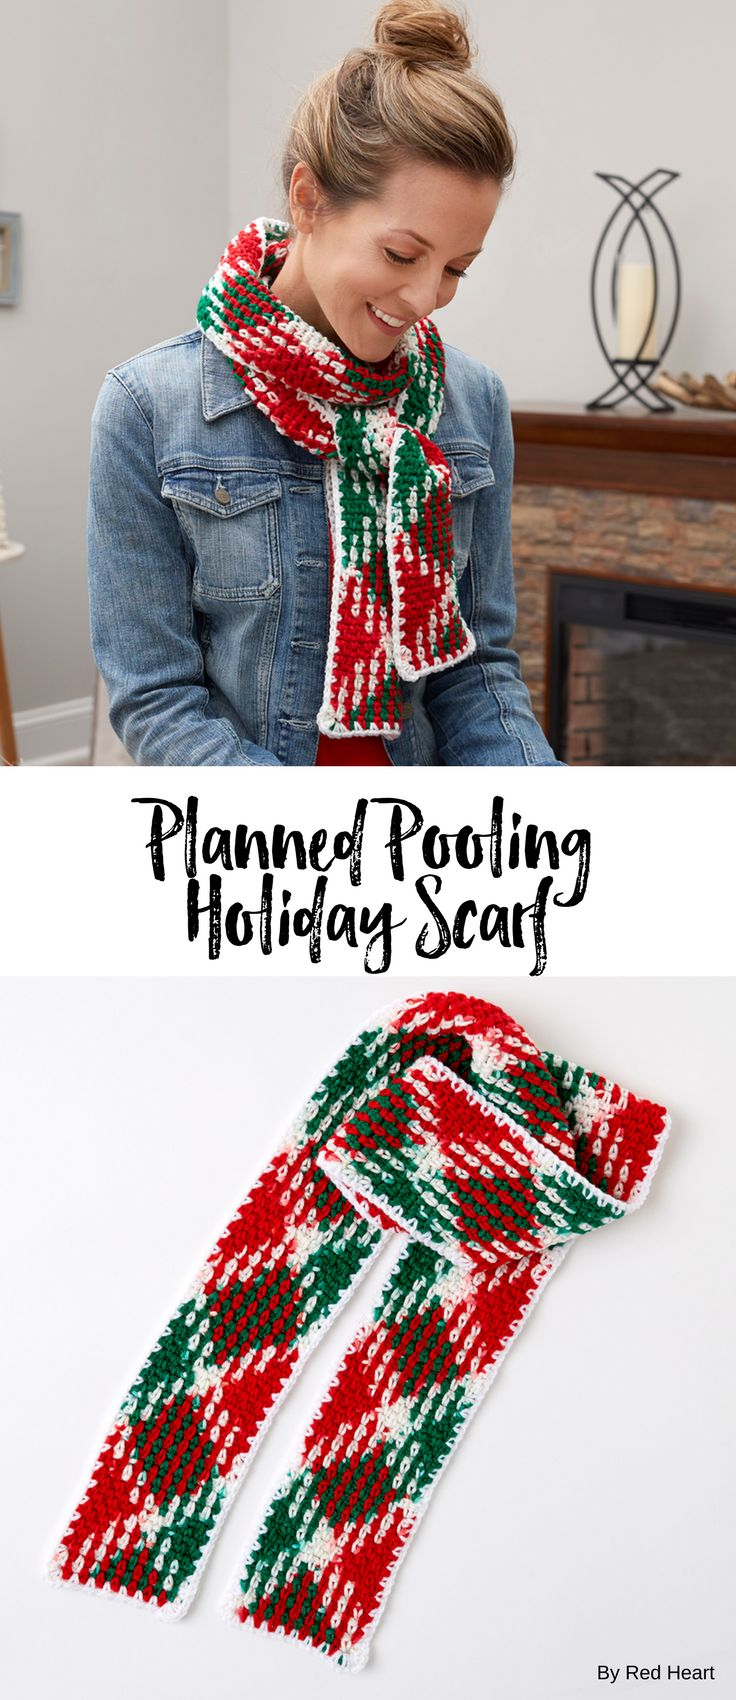 2625 best new new free patterns images on pinterest crochet planned pooling holiday scarf free crochet pattern in super saver yarn bankloansurffo Image collections